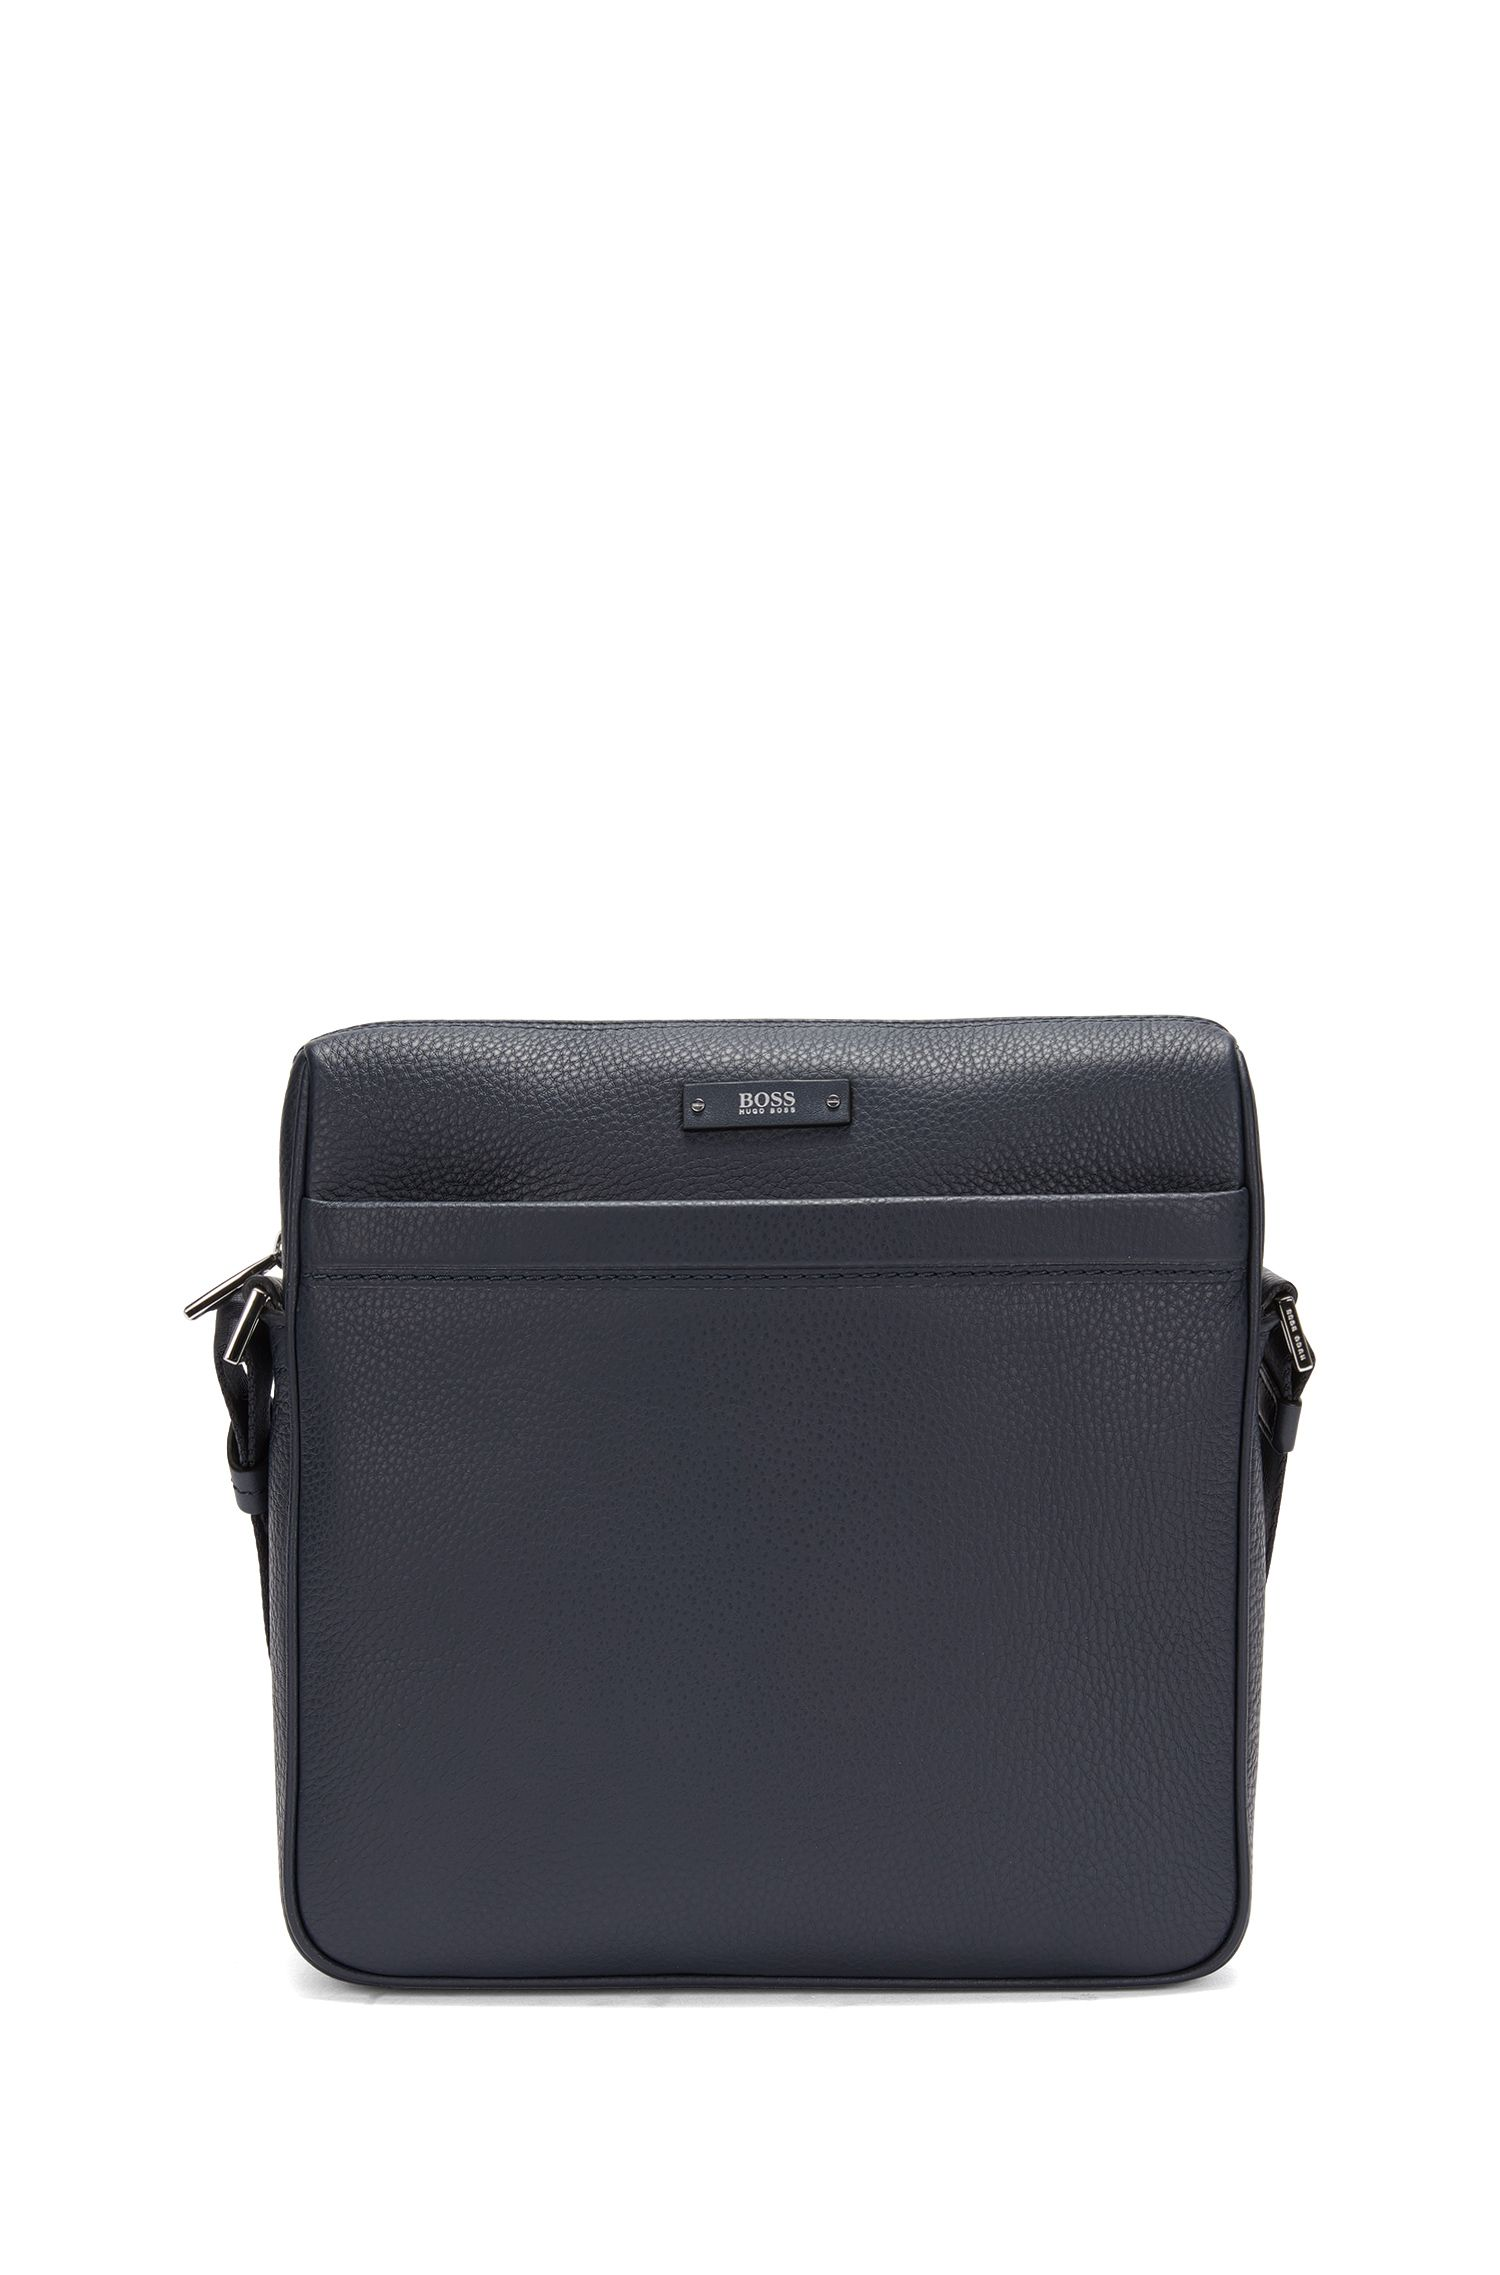 Borsa reporter in pelle martellata BOSS Travel Line